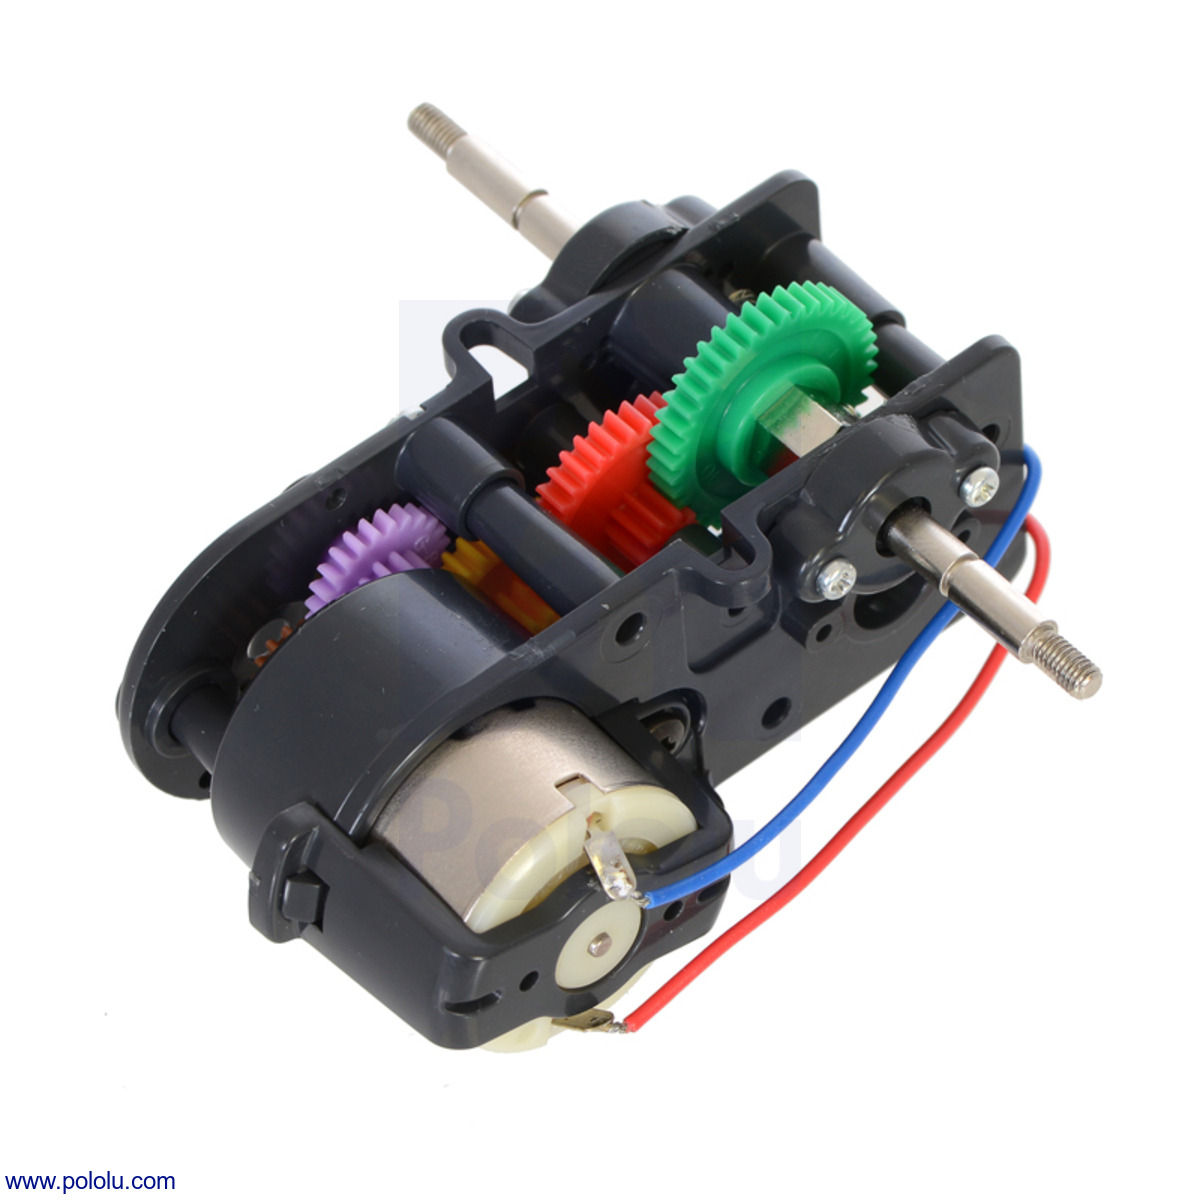 hight resolution of tamiya 72007 4 speed high power gearbox kit